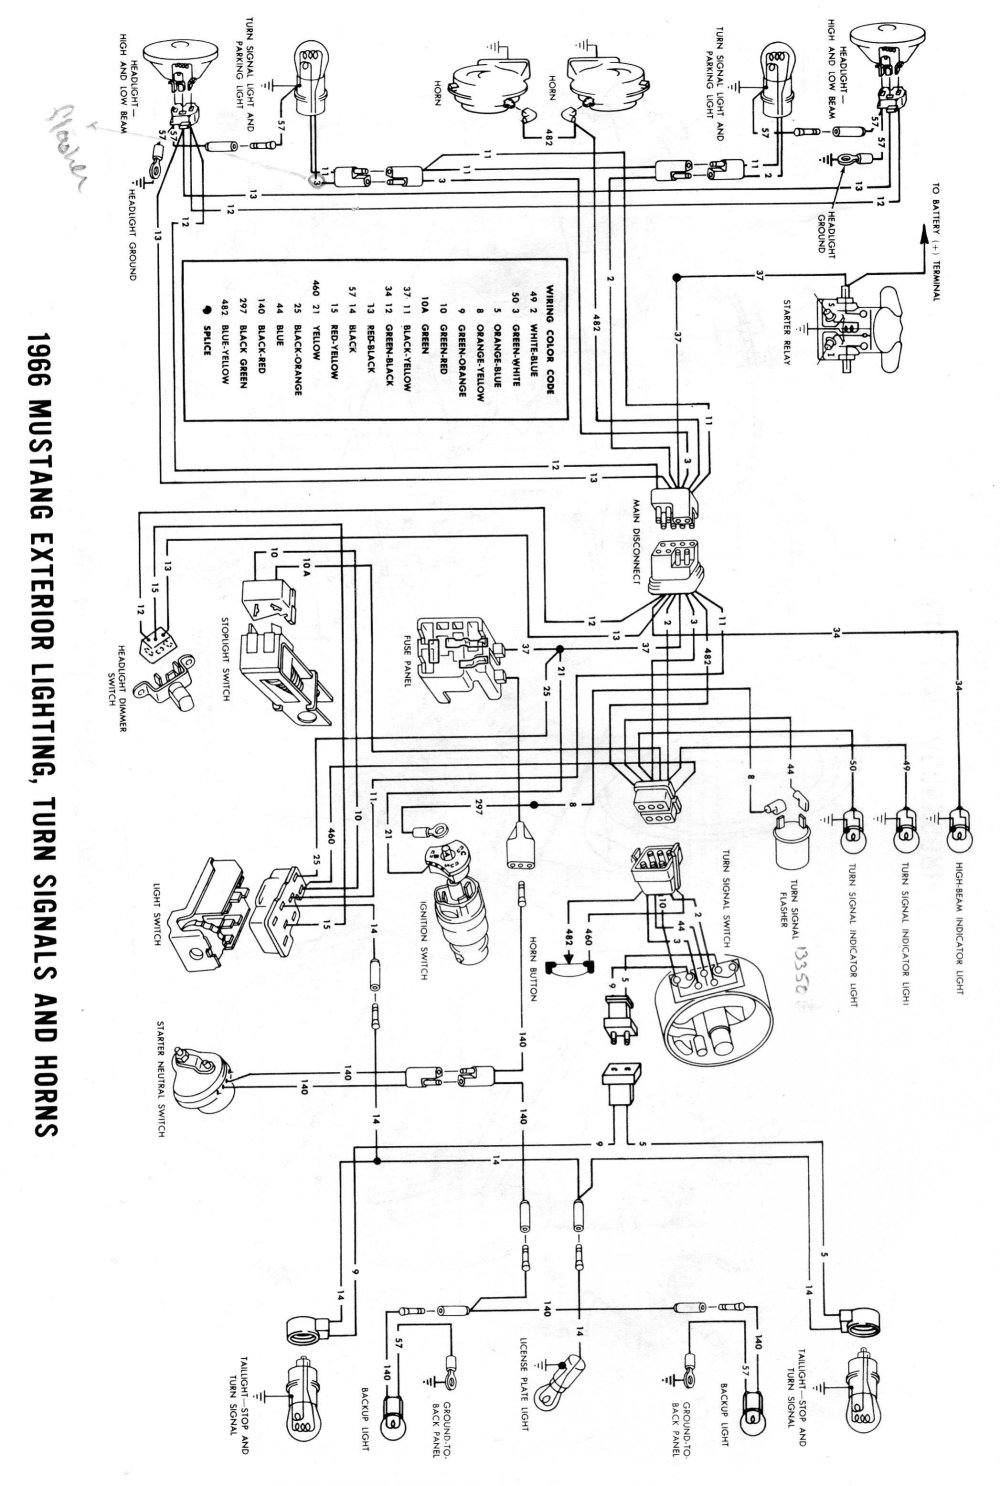 medium resolution of 1972 ford turn signal wiring wiring diagram used 1953 ford turn signal wiring diagram 1972 ford